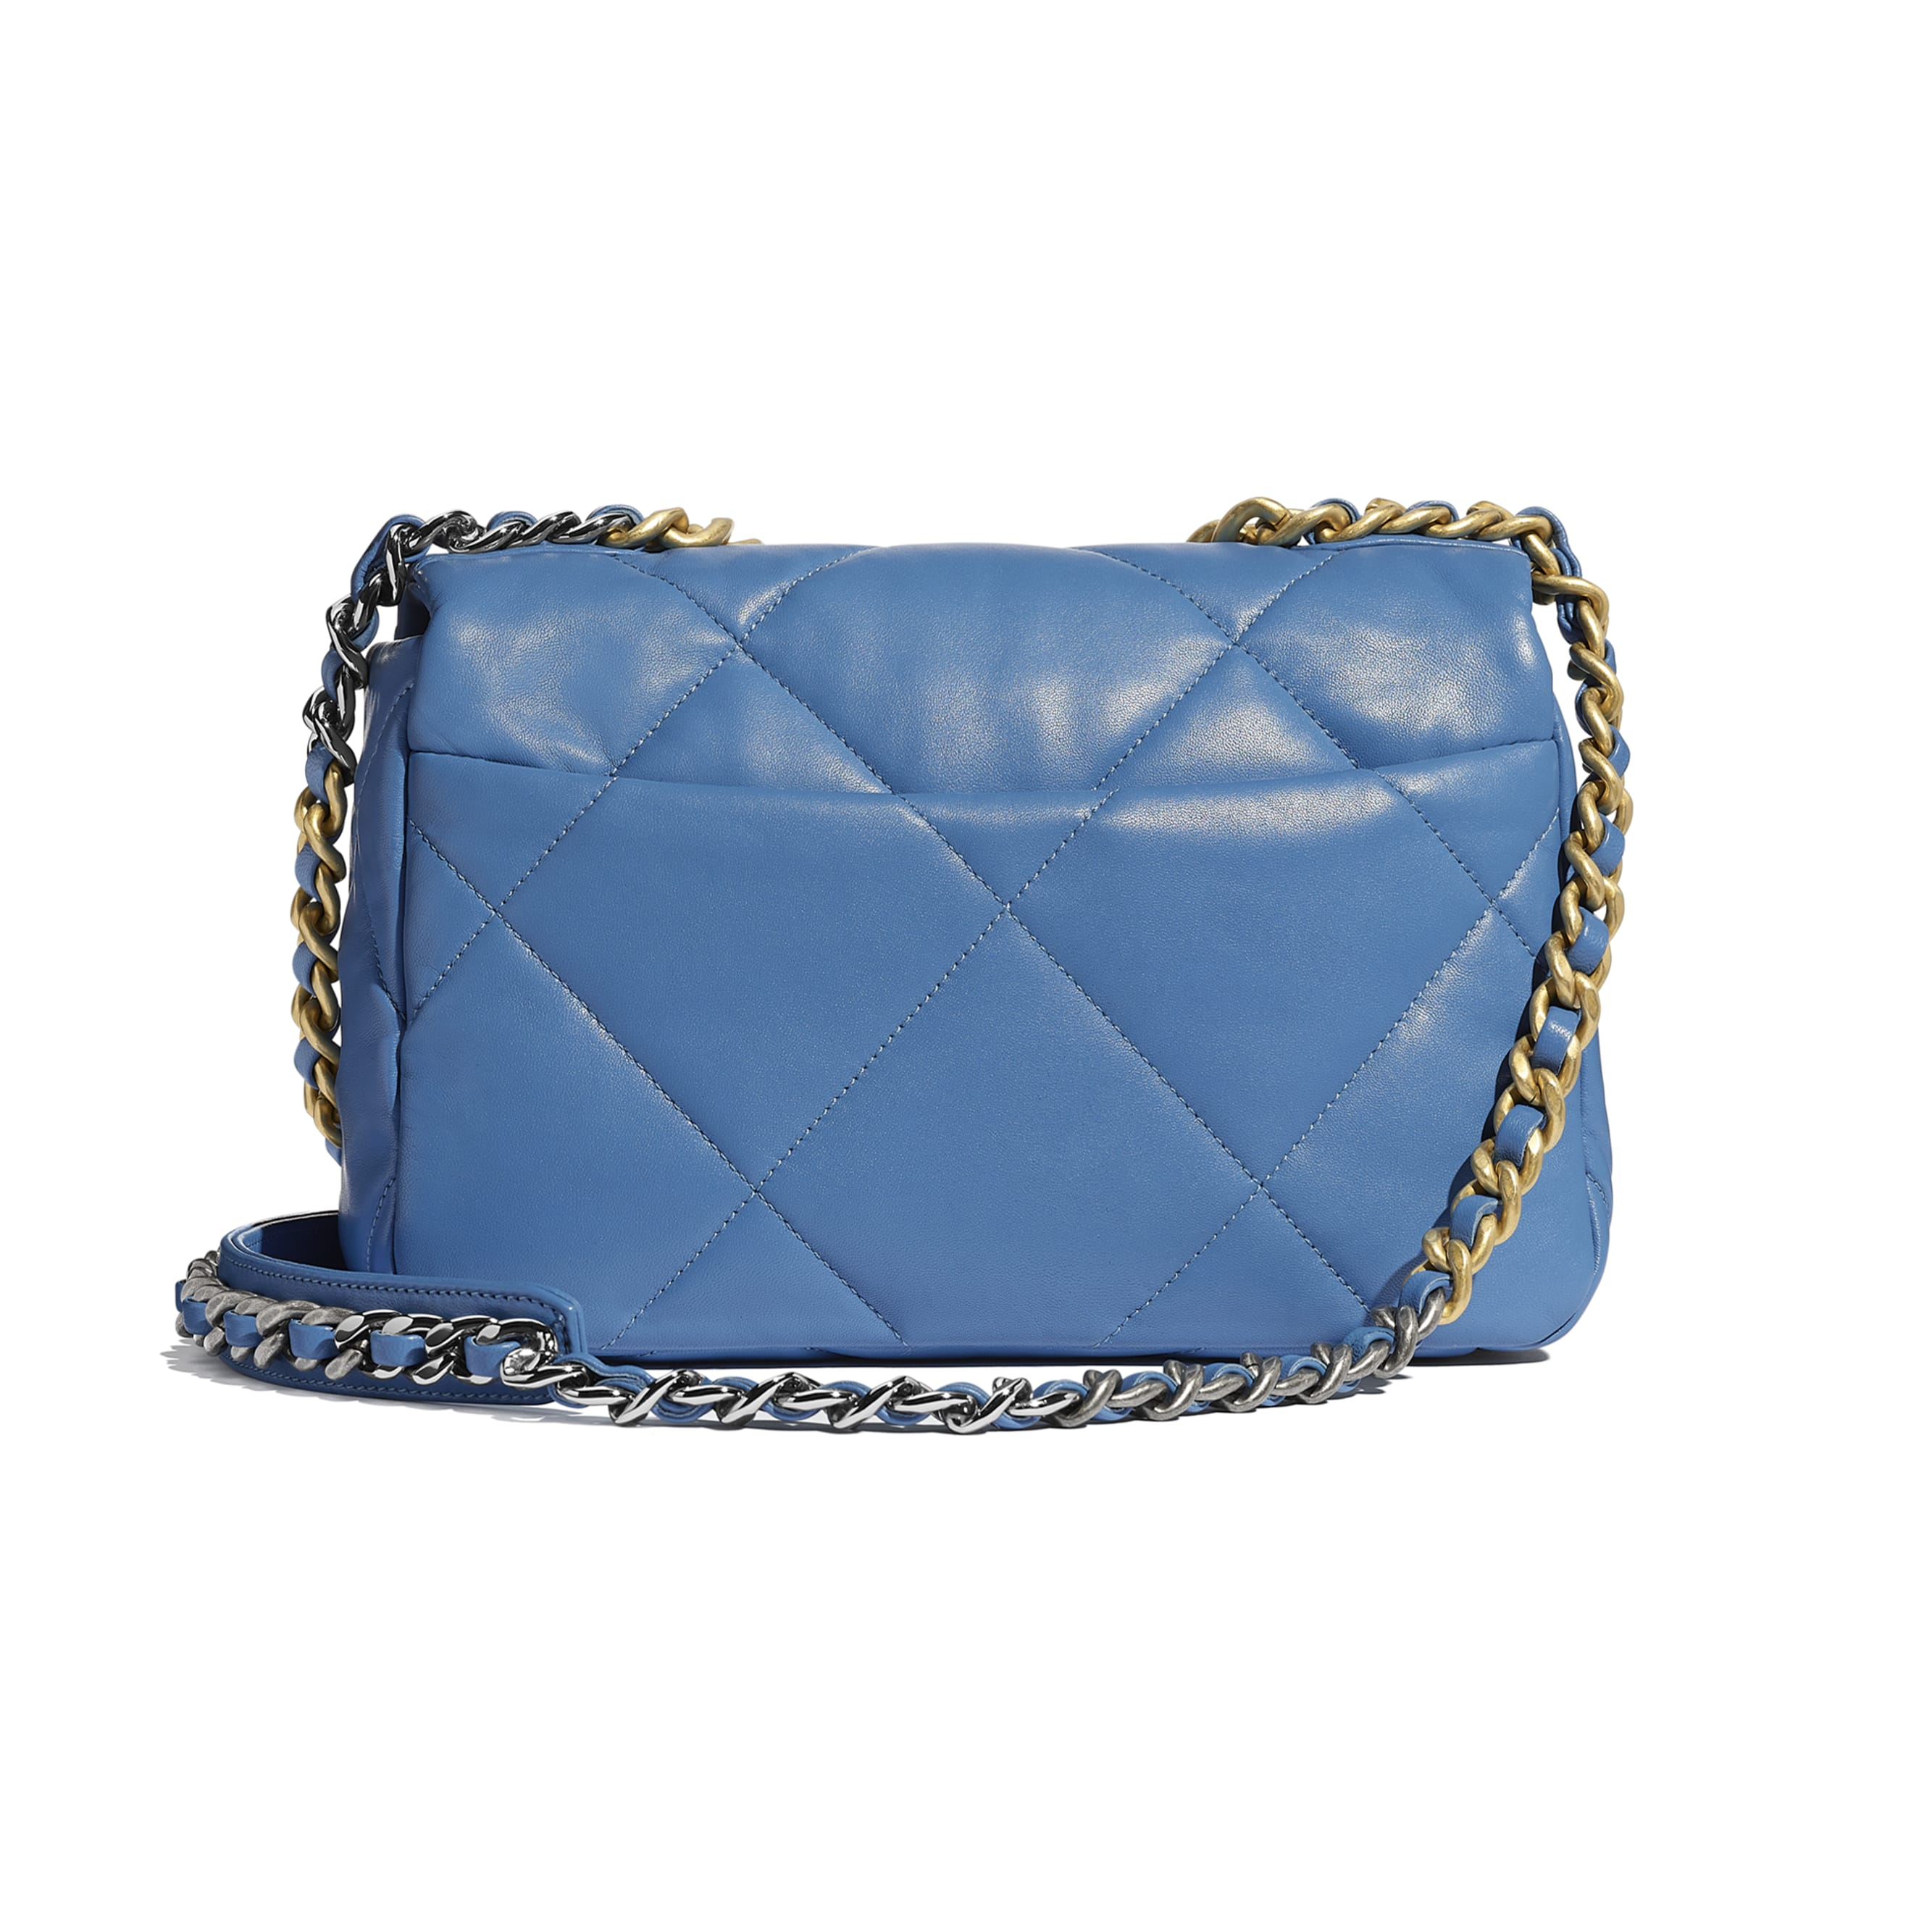 CHANEL 19 Flap Bag - Blue - Lambskin, Gold-Tone, Silver-Tone & Ruthenium-Finish Metal - CHANEL - Alternative view - see standard sized version